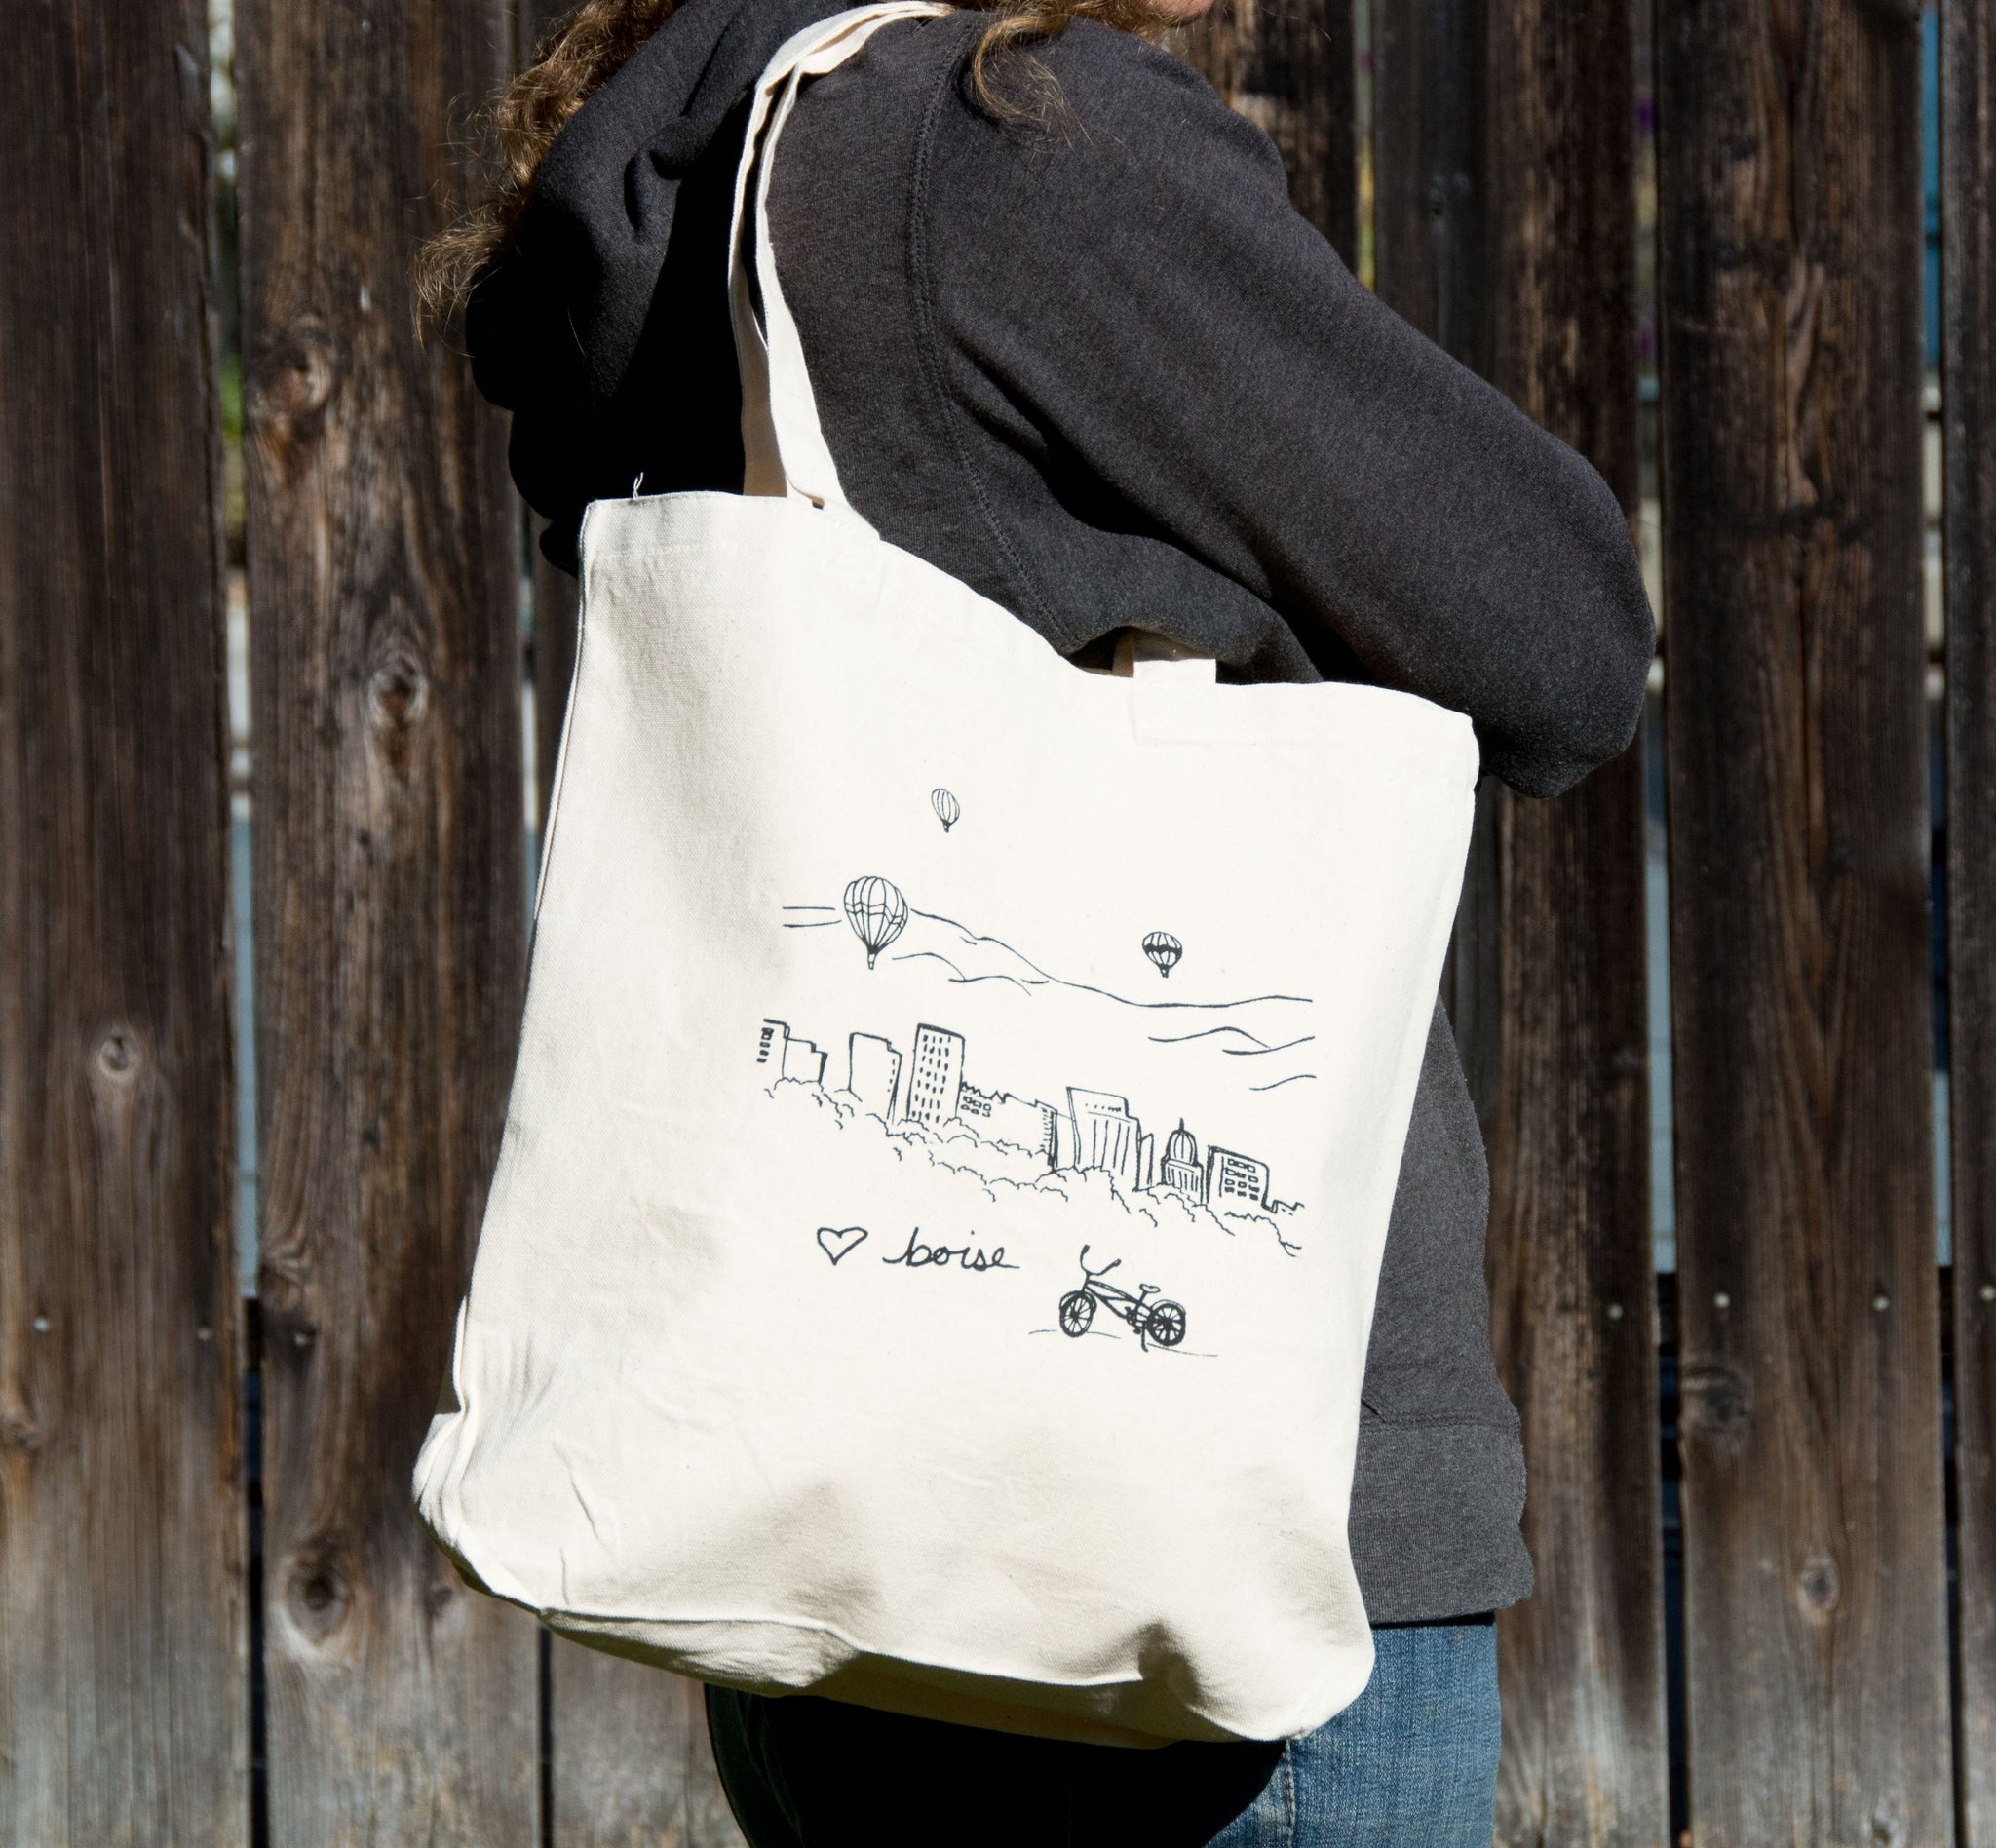 Boise Balloon Screen Printed Tote Bag, Large heavy duty canvas bag